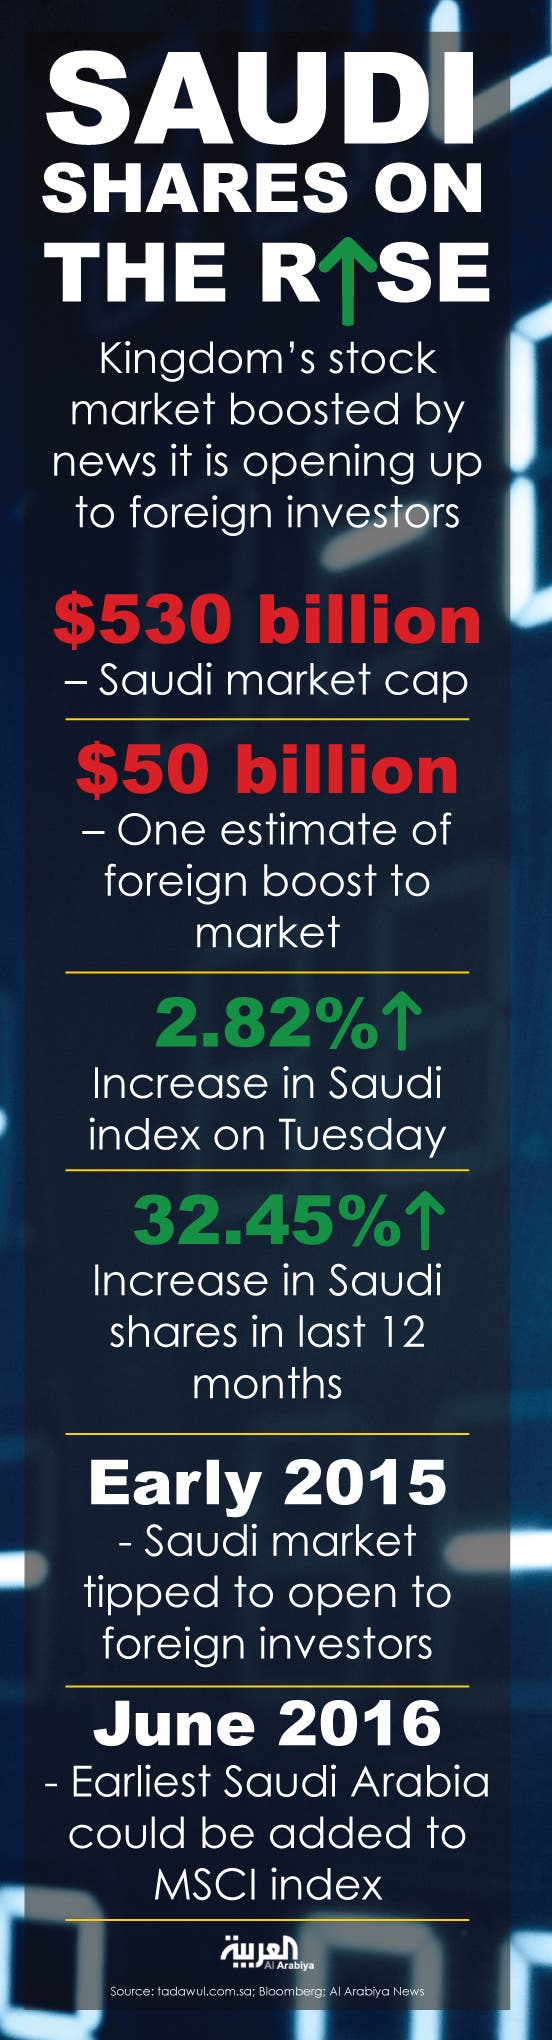 Infographic: Saudi shares on the rise